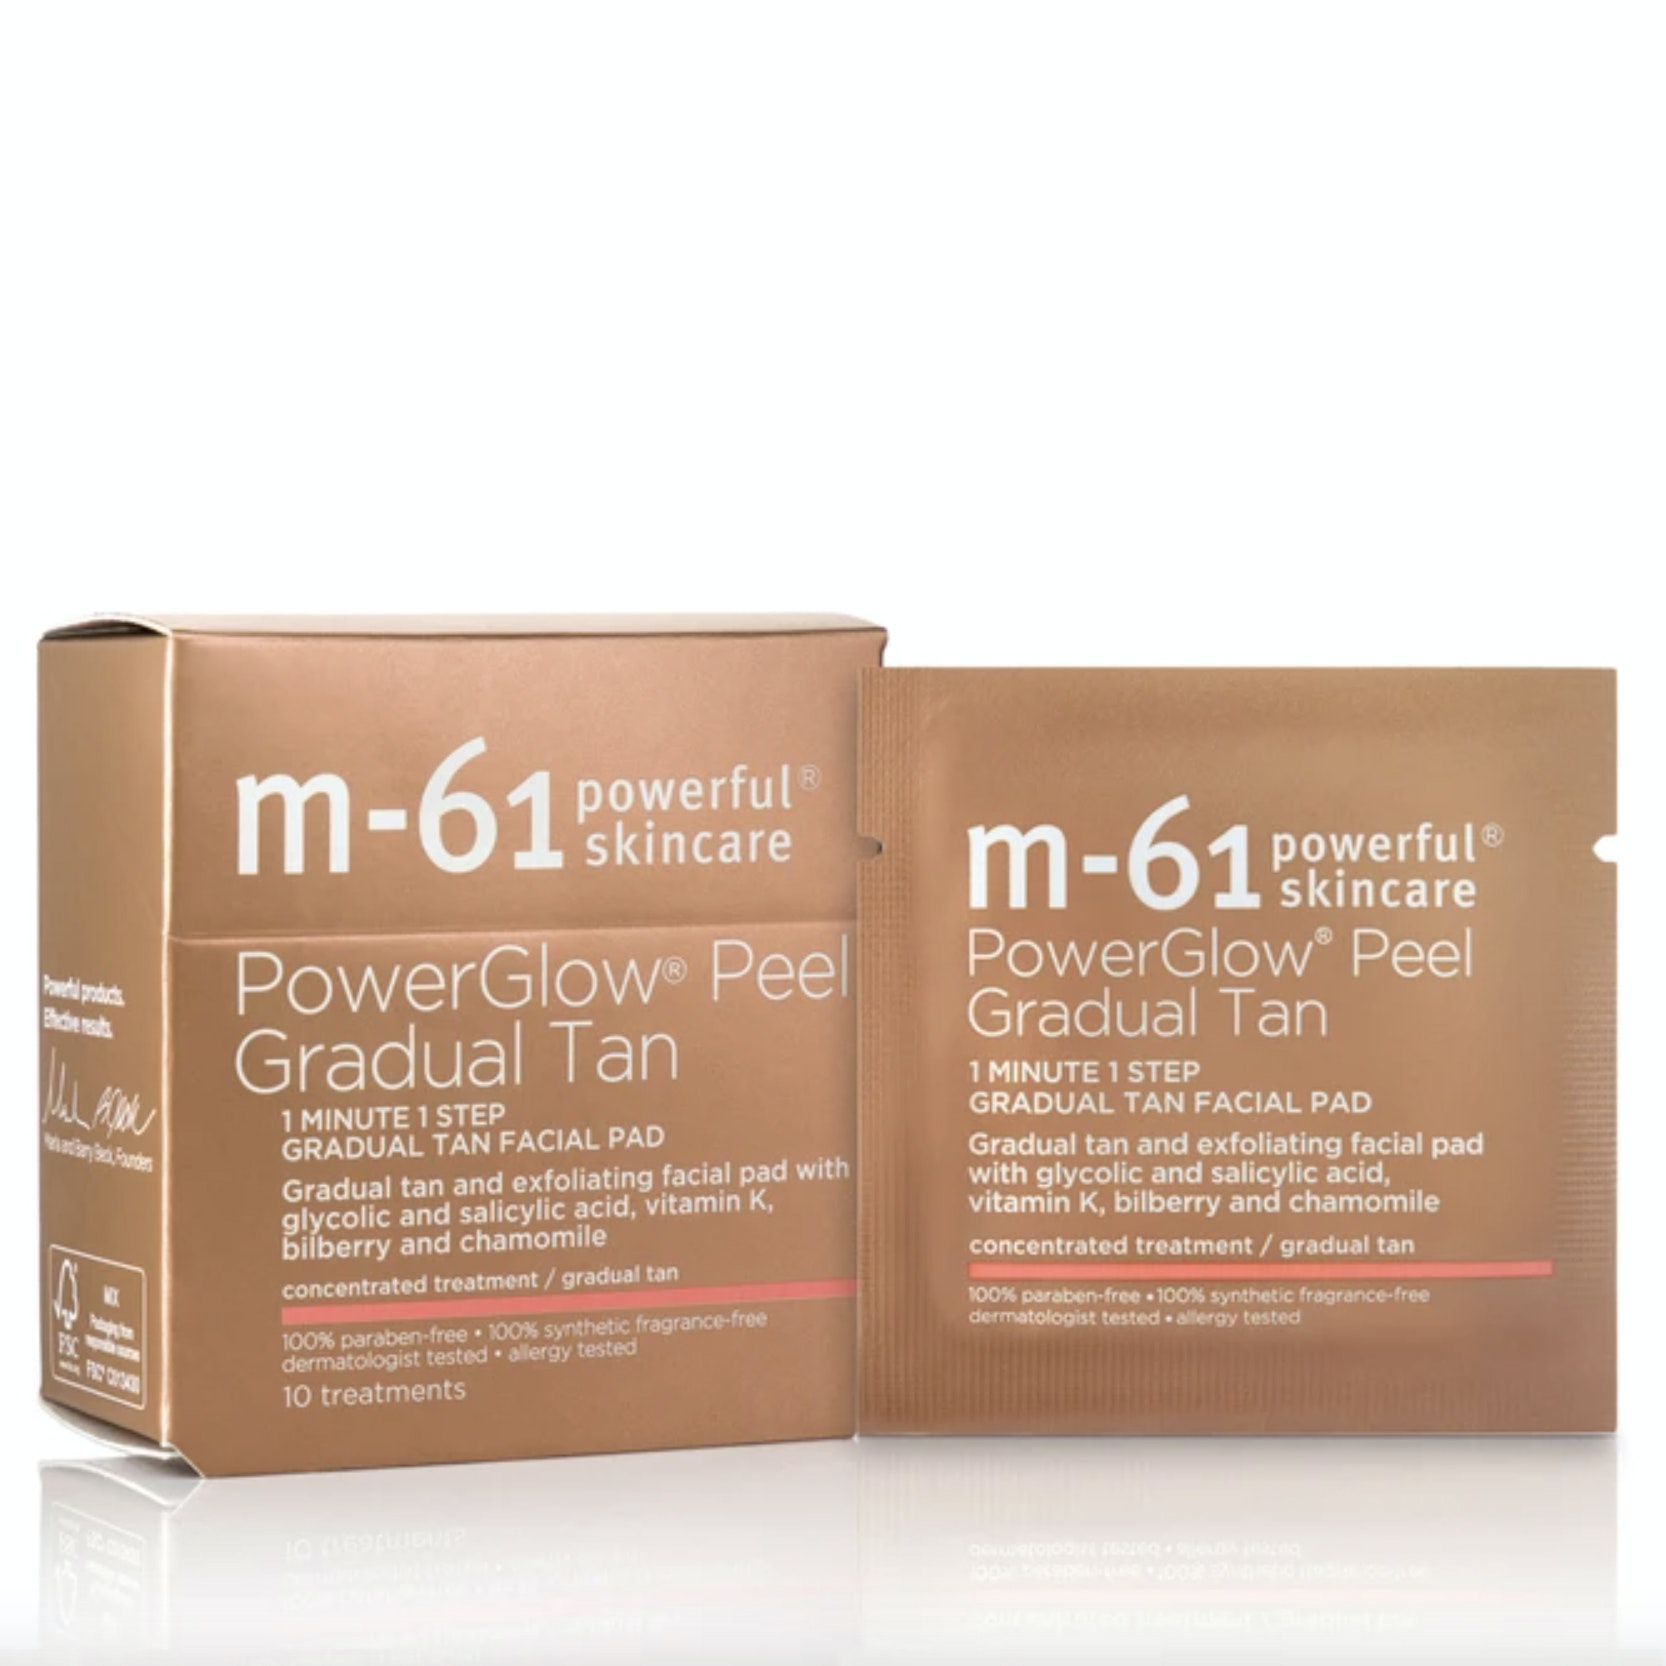 M-61® PowerGlow® Peel Gradual Tan